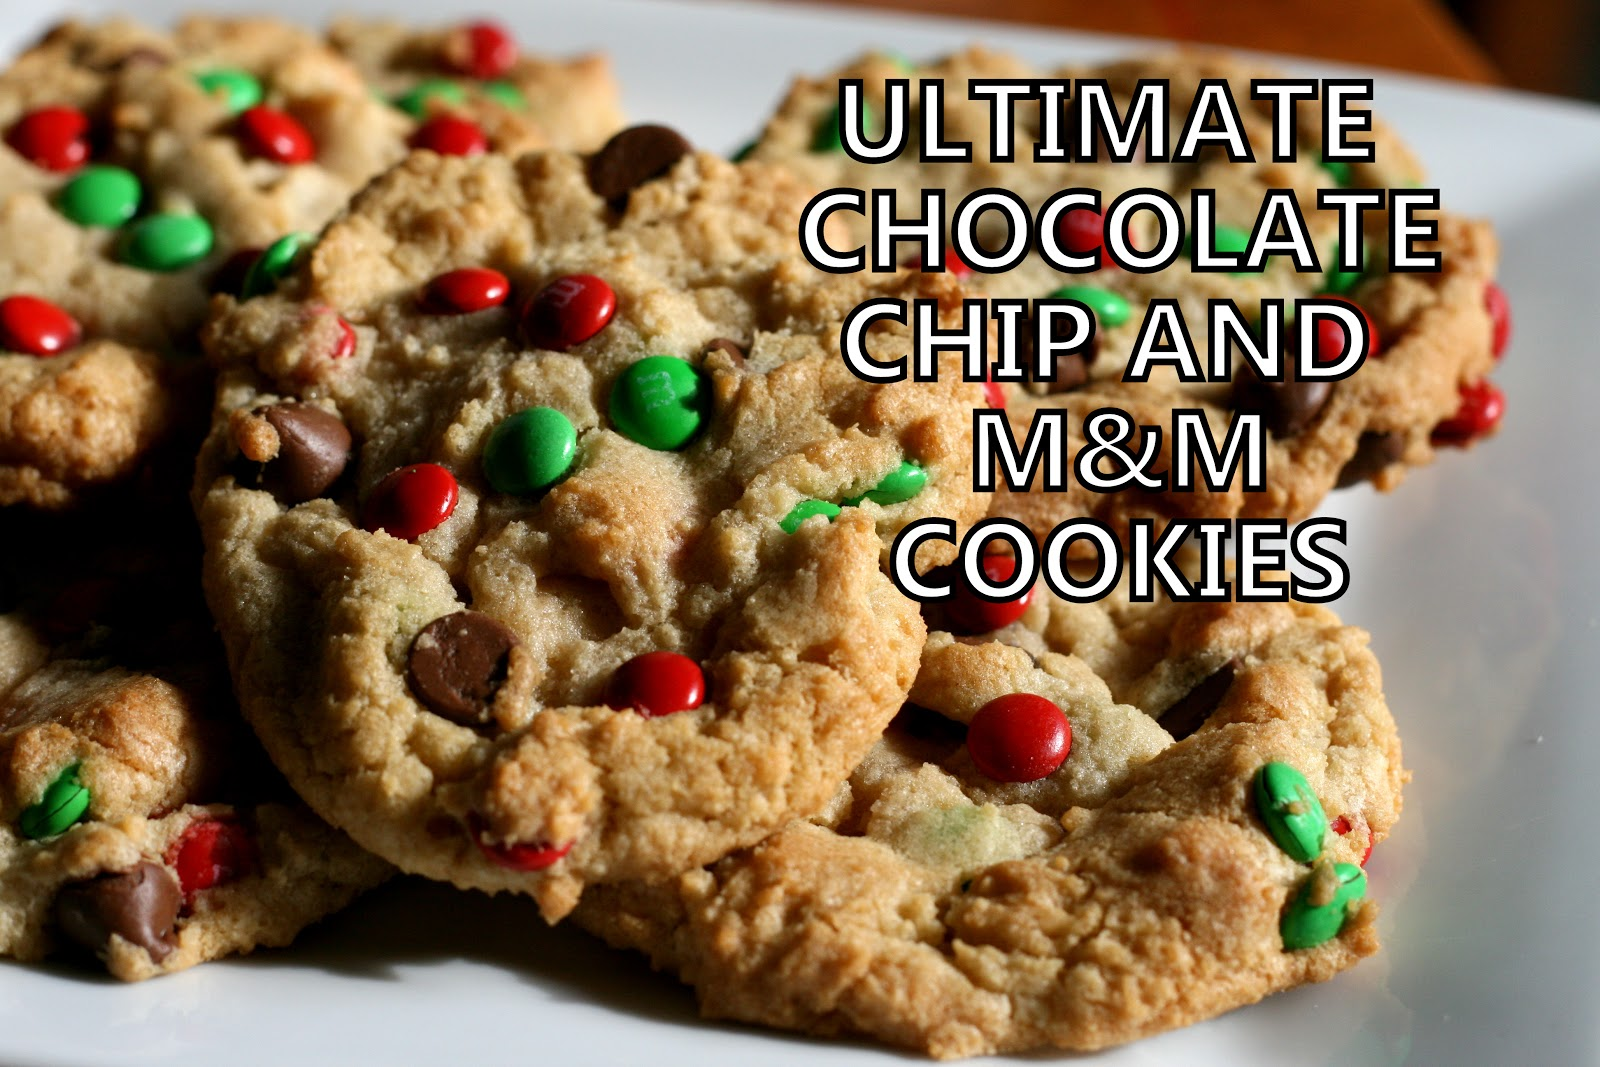 Millions of Miles: Ultimate Chocolate Chip and M&M Cookies